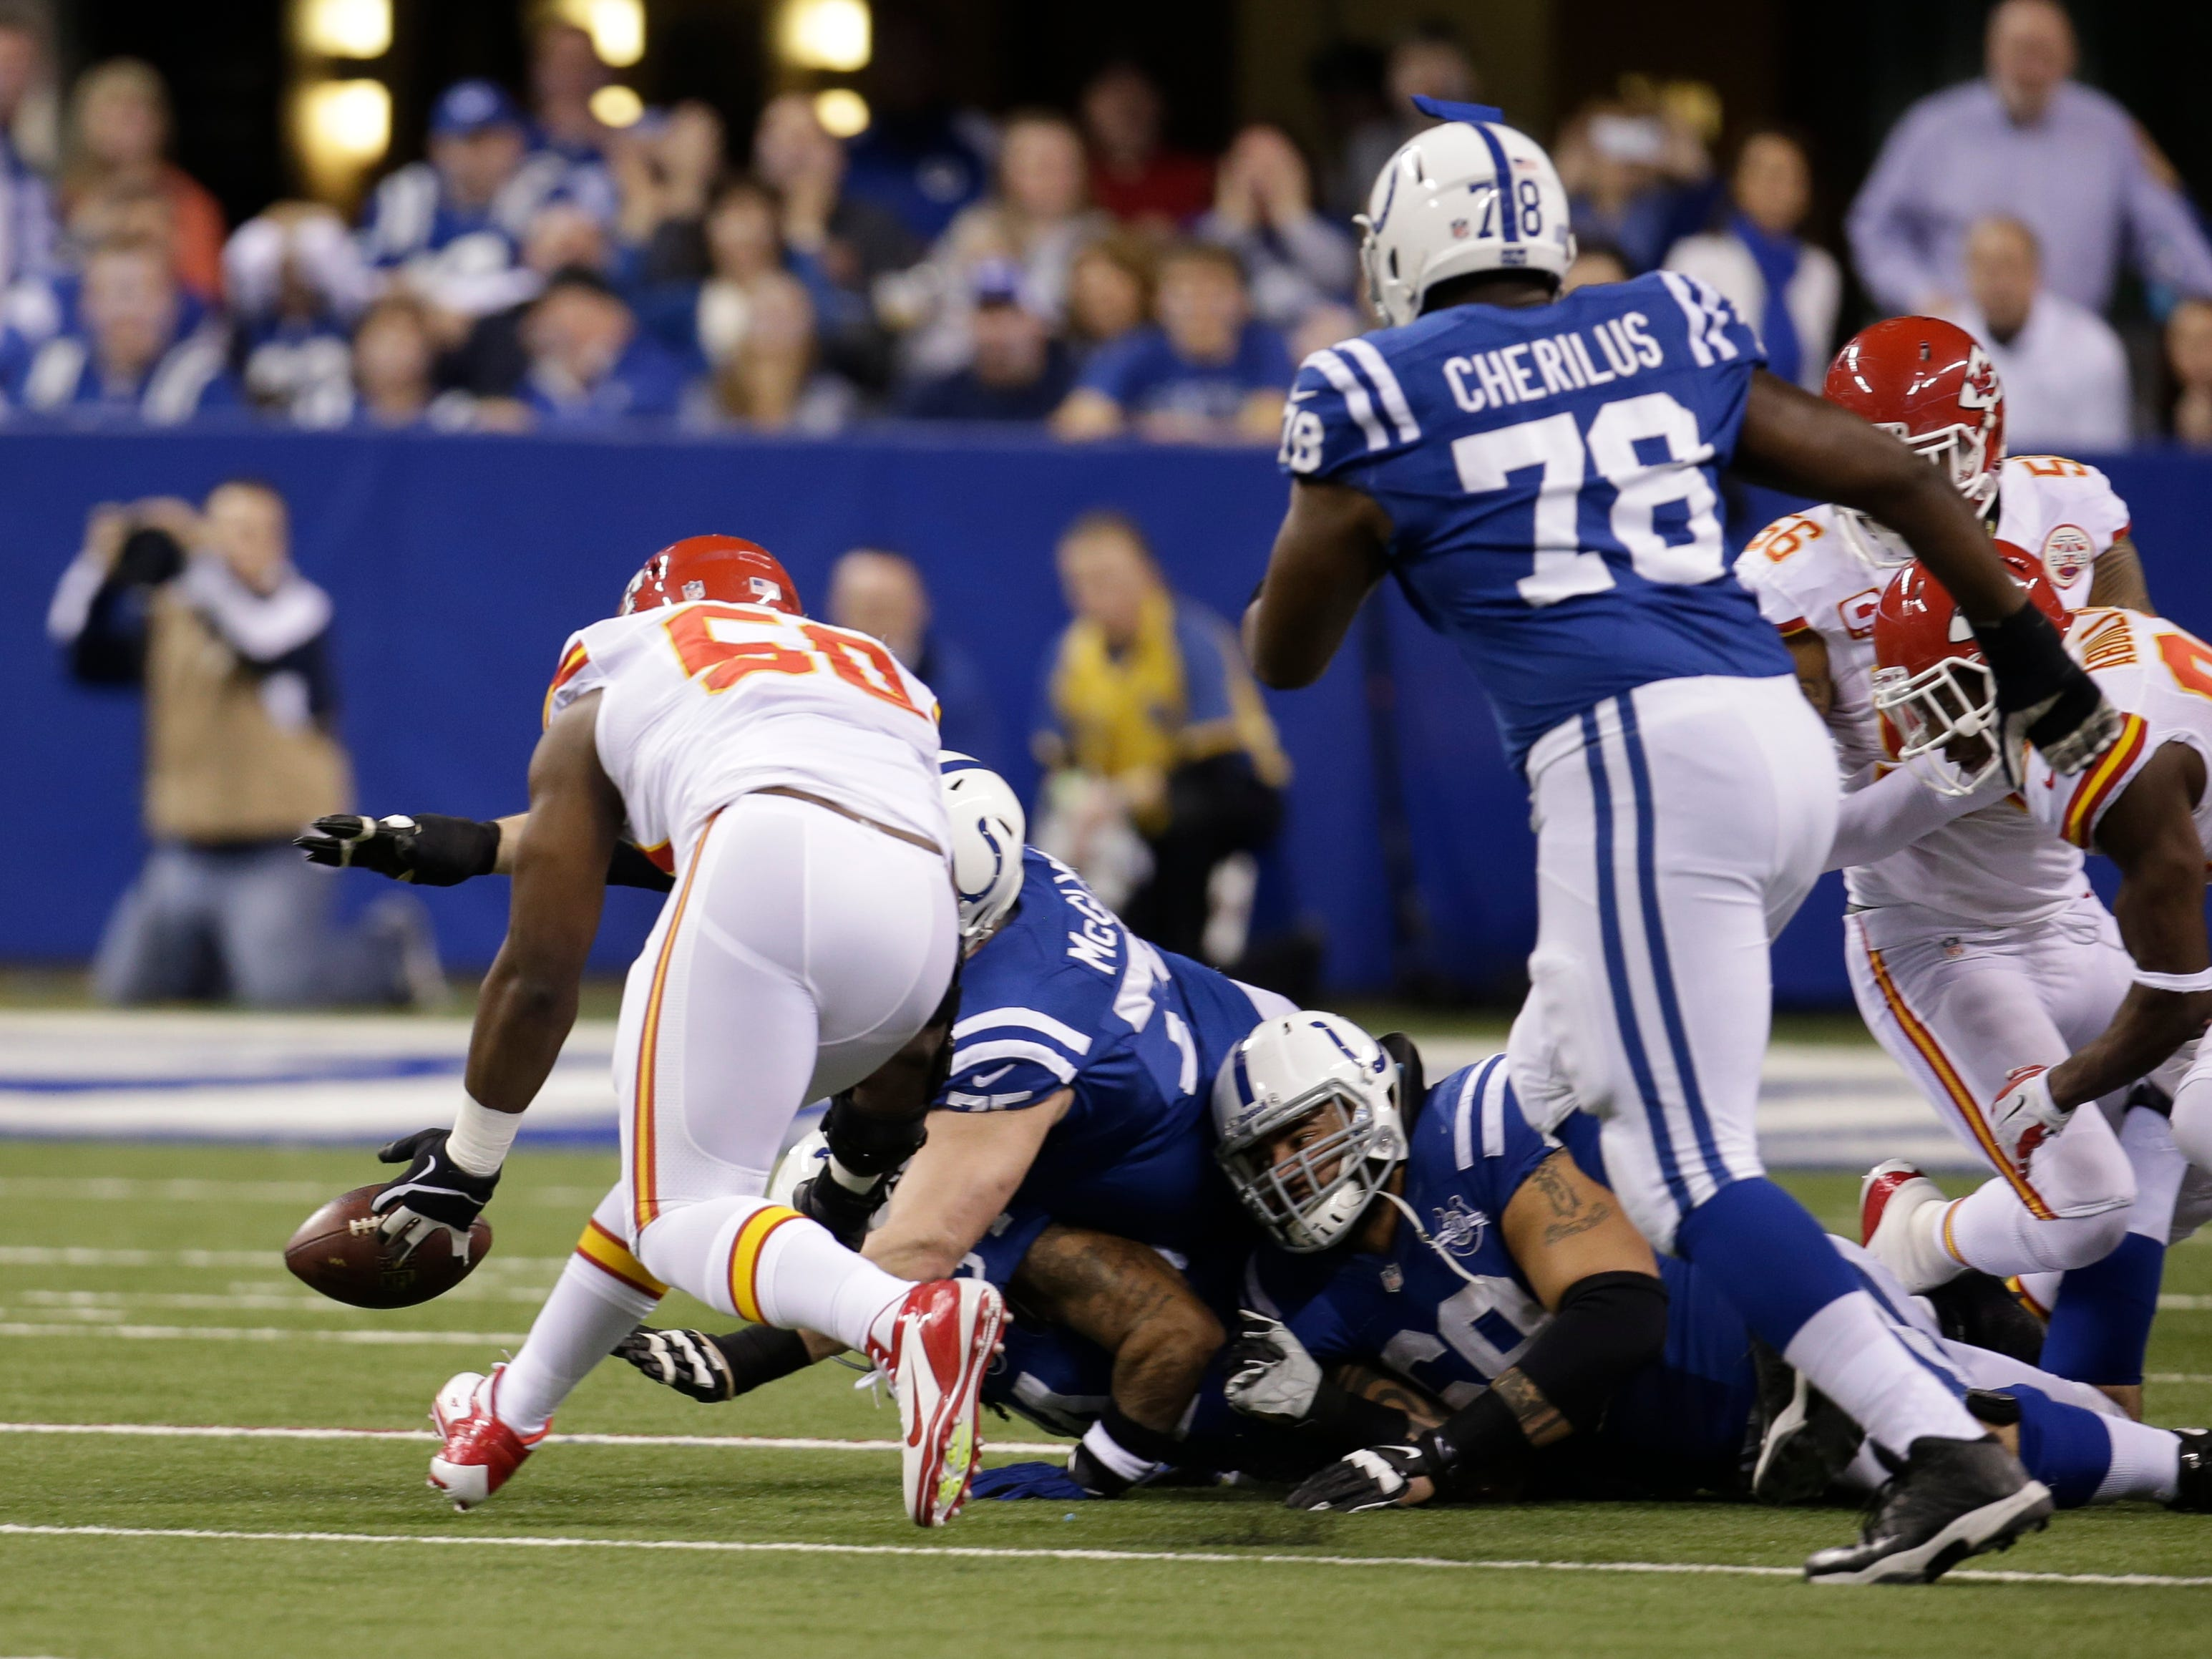 Kansas City Chiefs outside linebacker Justin Houston (50) recovered a fumble during the first half of an NFL wild-card playoff football game against the Indianapolis Colts on Jan. 4, 2014, in Indianapolis. (AP Photo/AJ Mast)